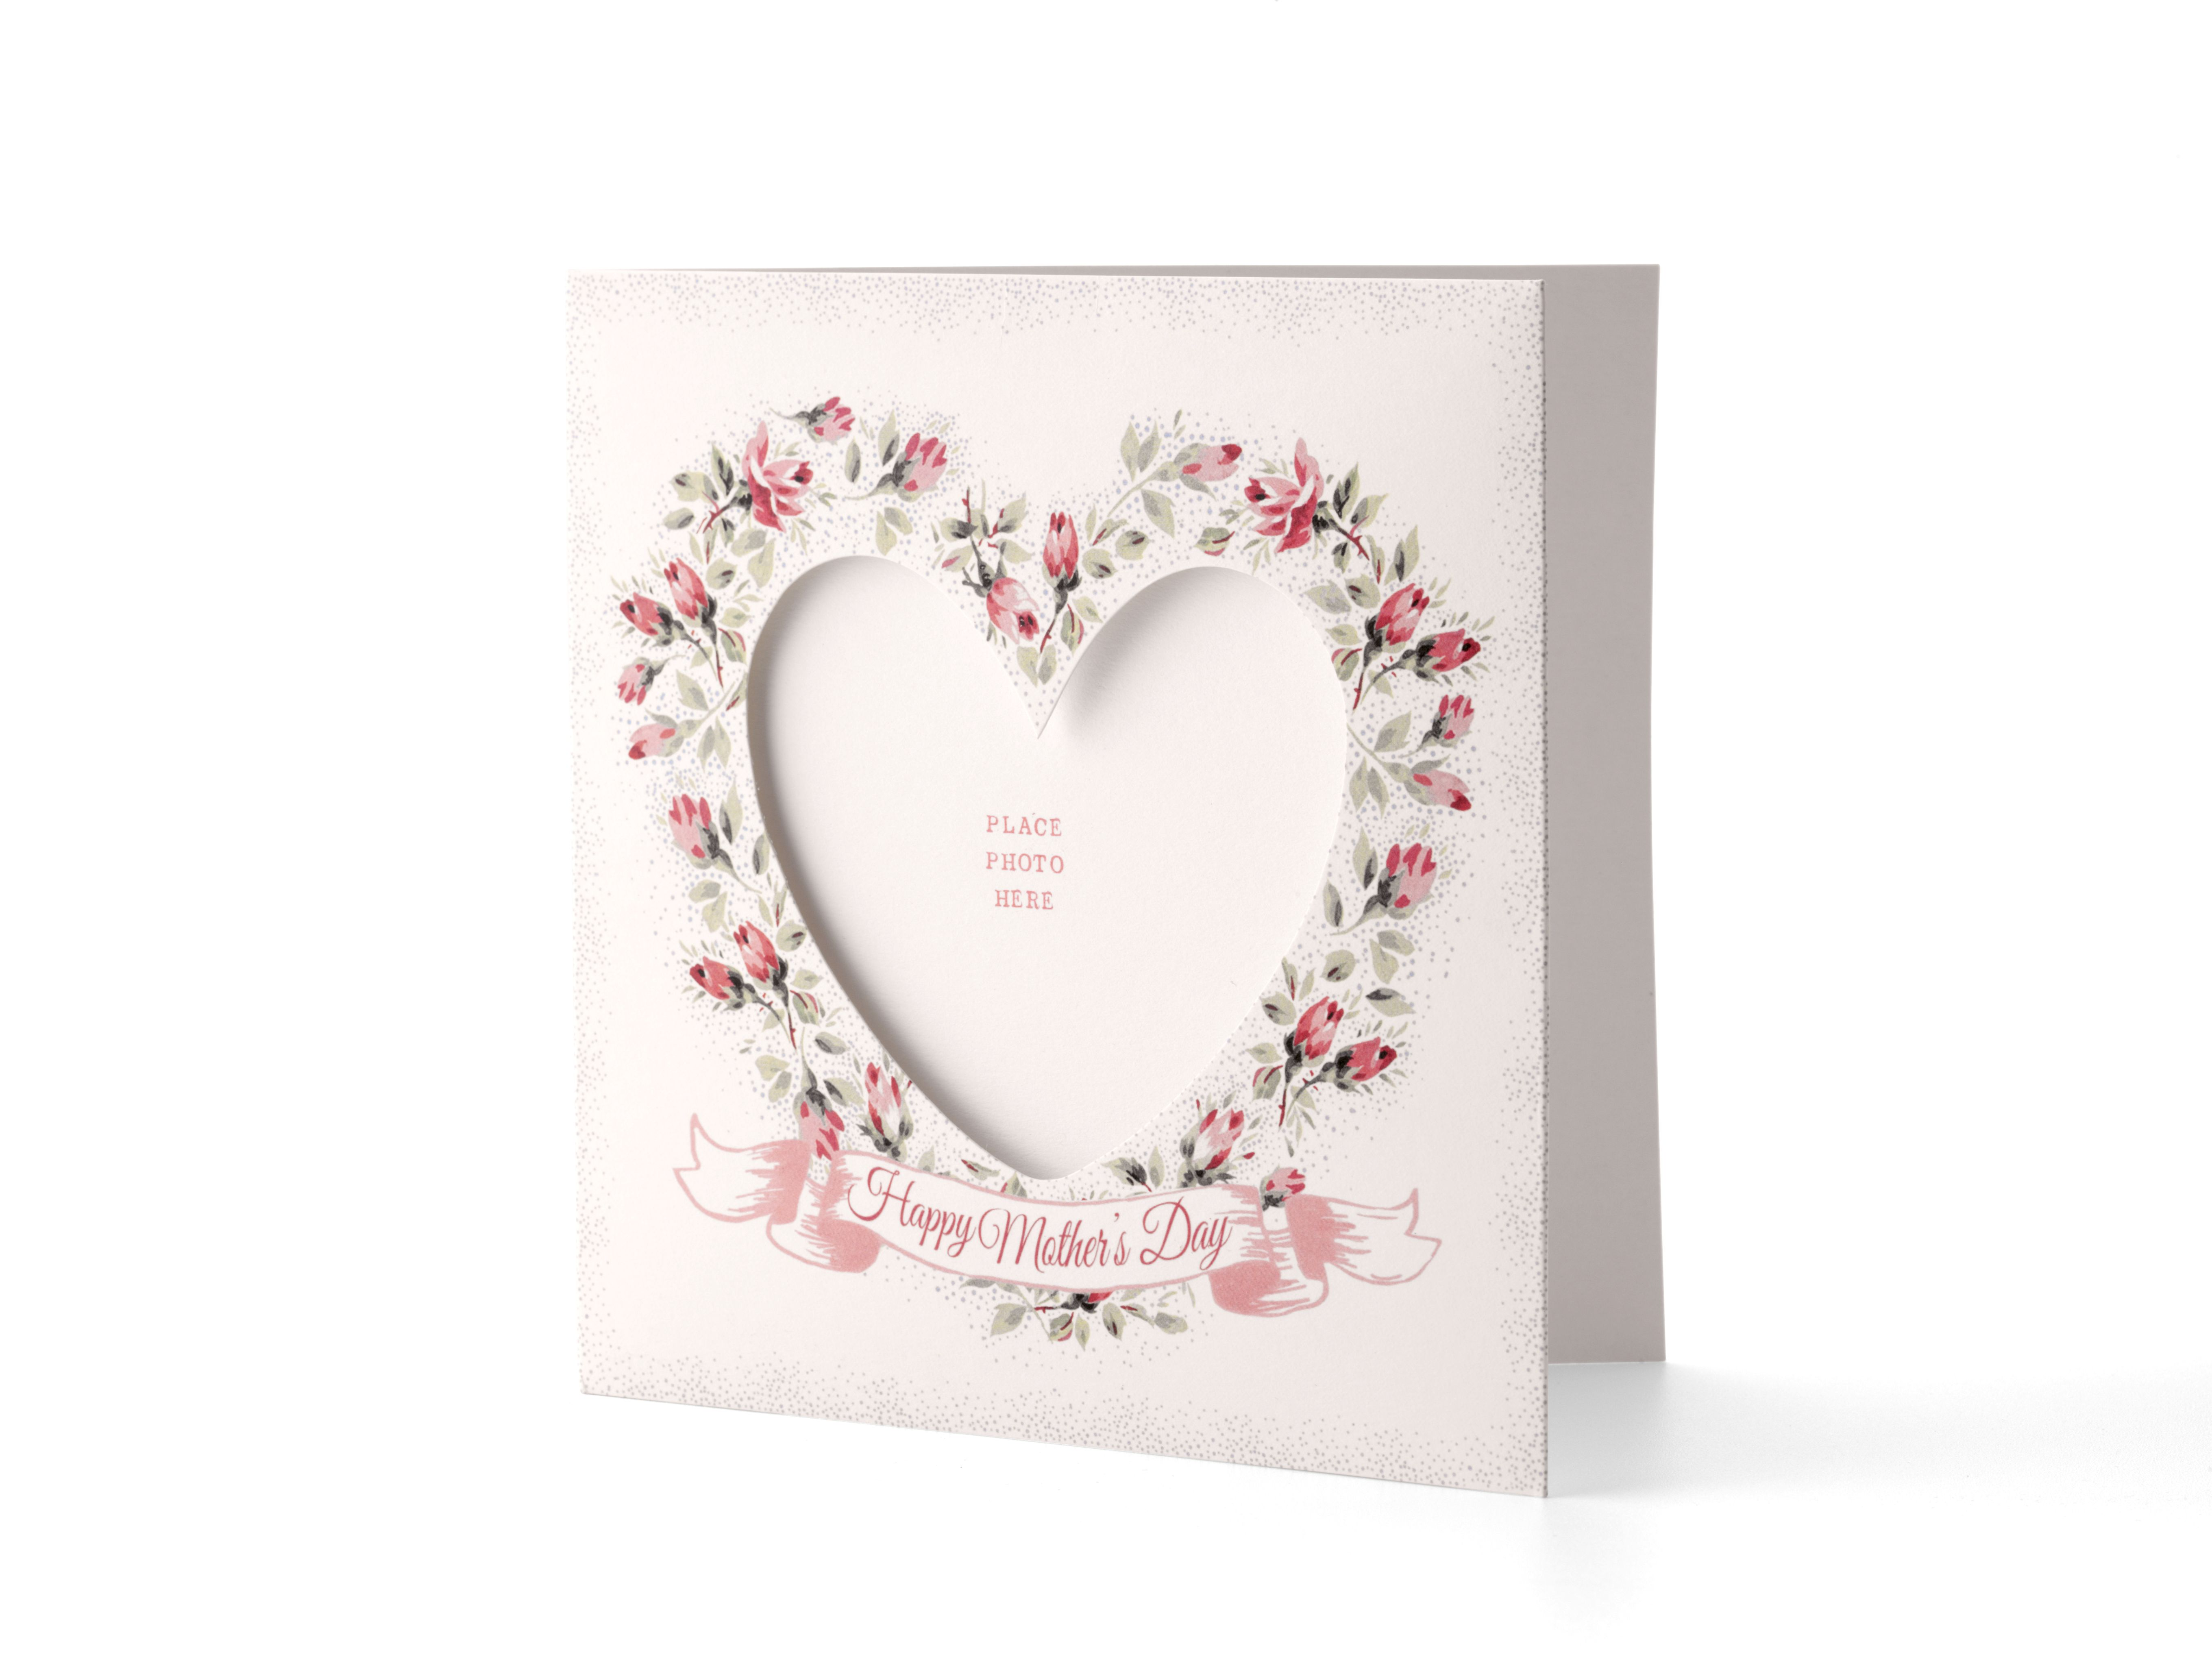 Add A Personal Touch And Show Mum You Care This Mothers Day With